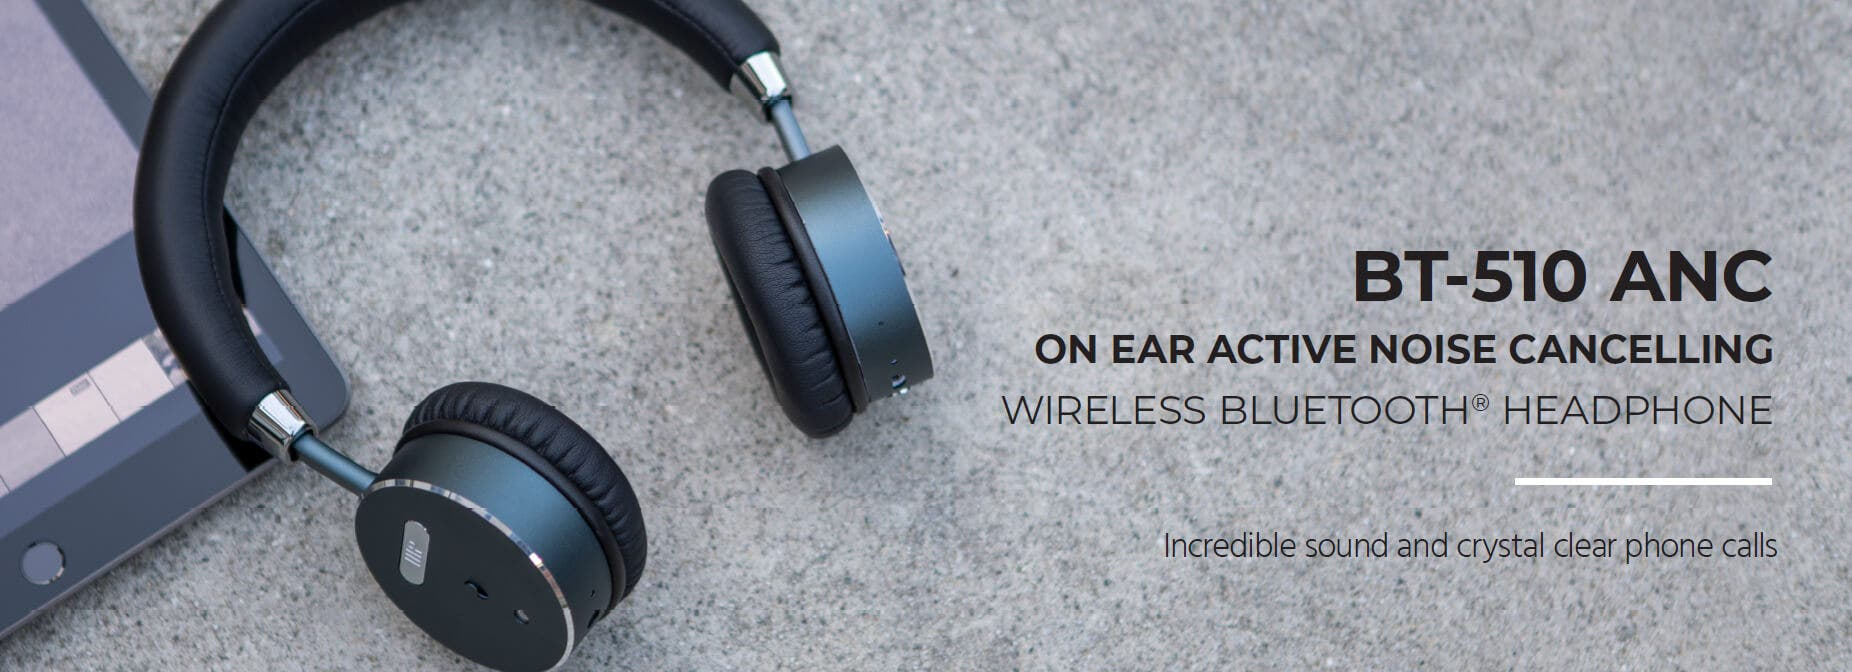 Monoprice BT-510ANC On Ear Active Noise Cancelling (ANC) Wireless